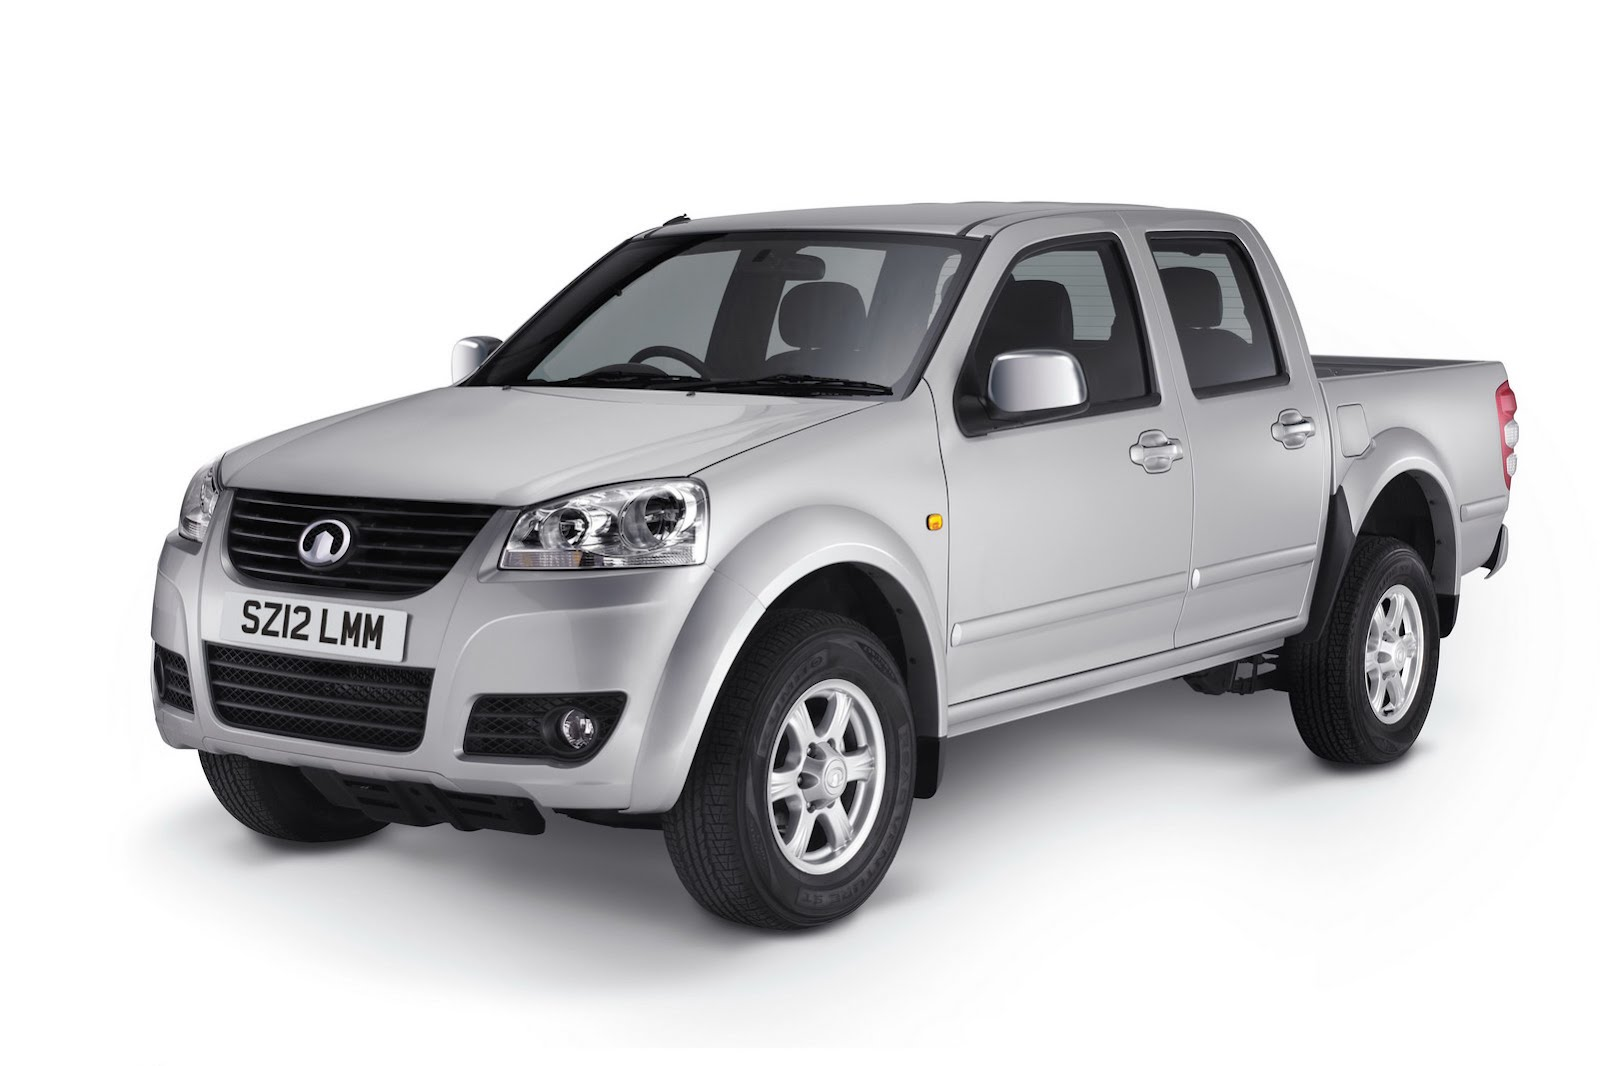 Great Wall Steed Pickup Truck Chinas Great Wall Motors to launch with Steed Pickup Truck